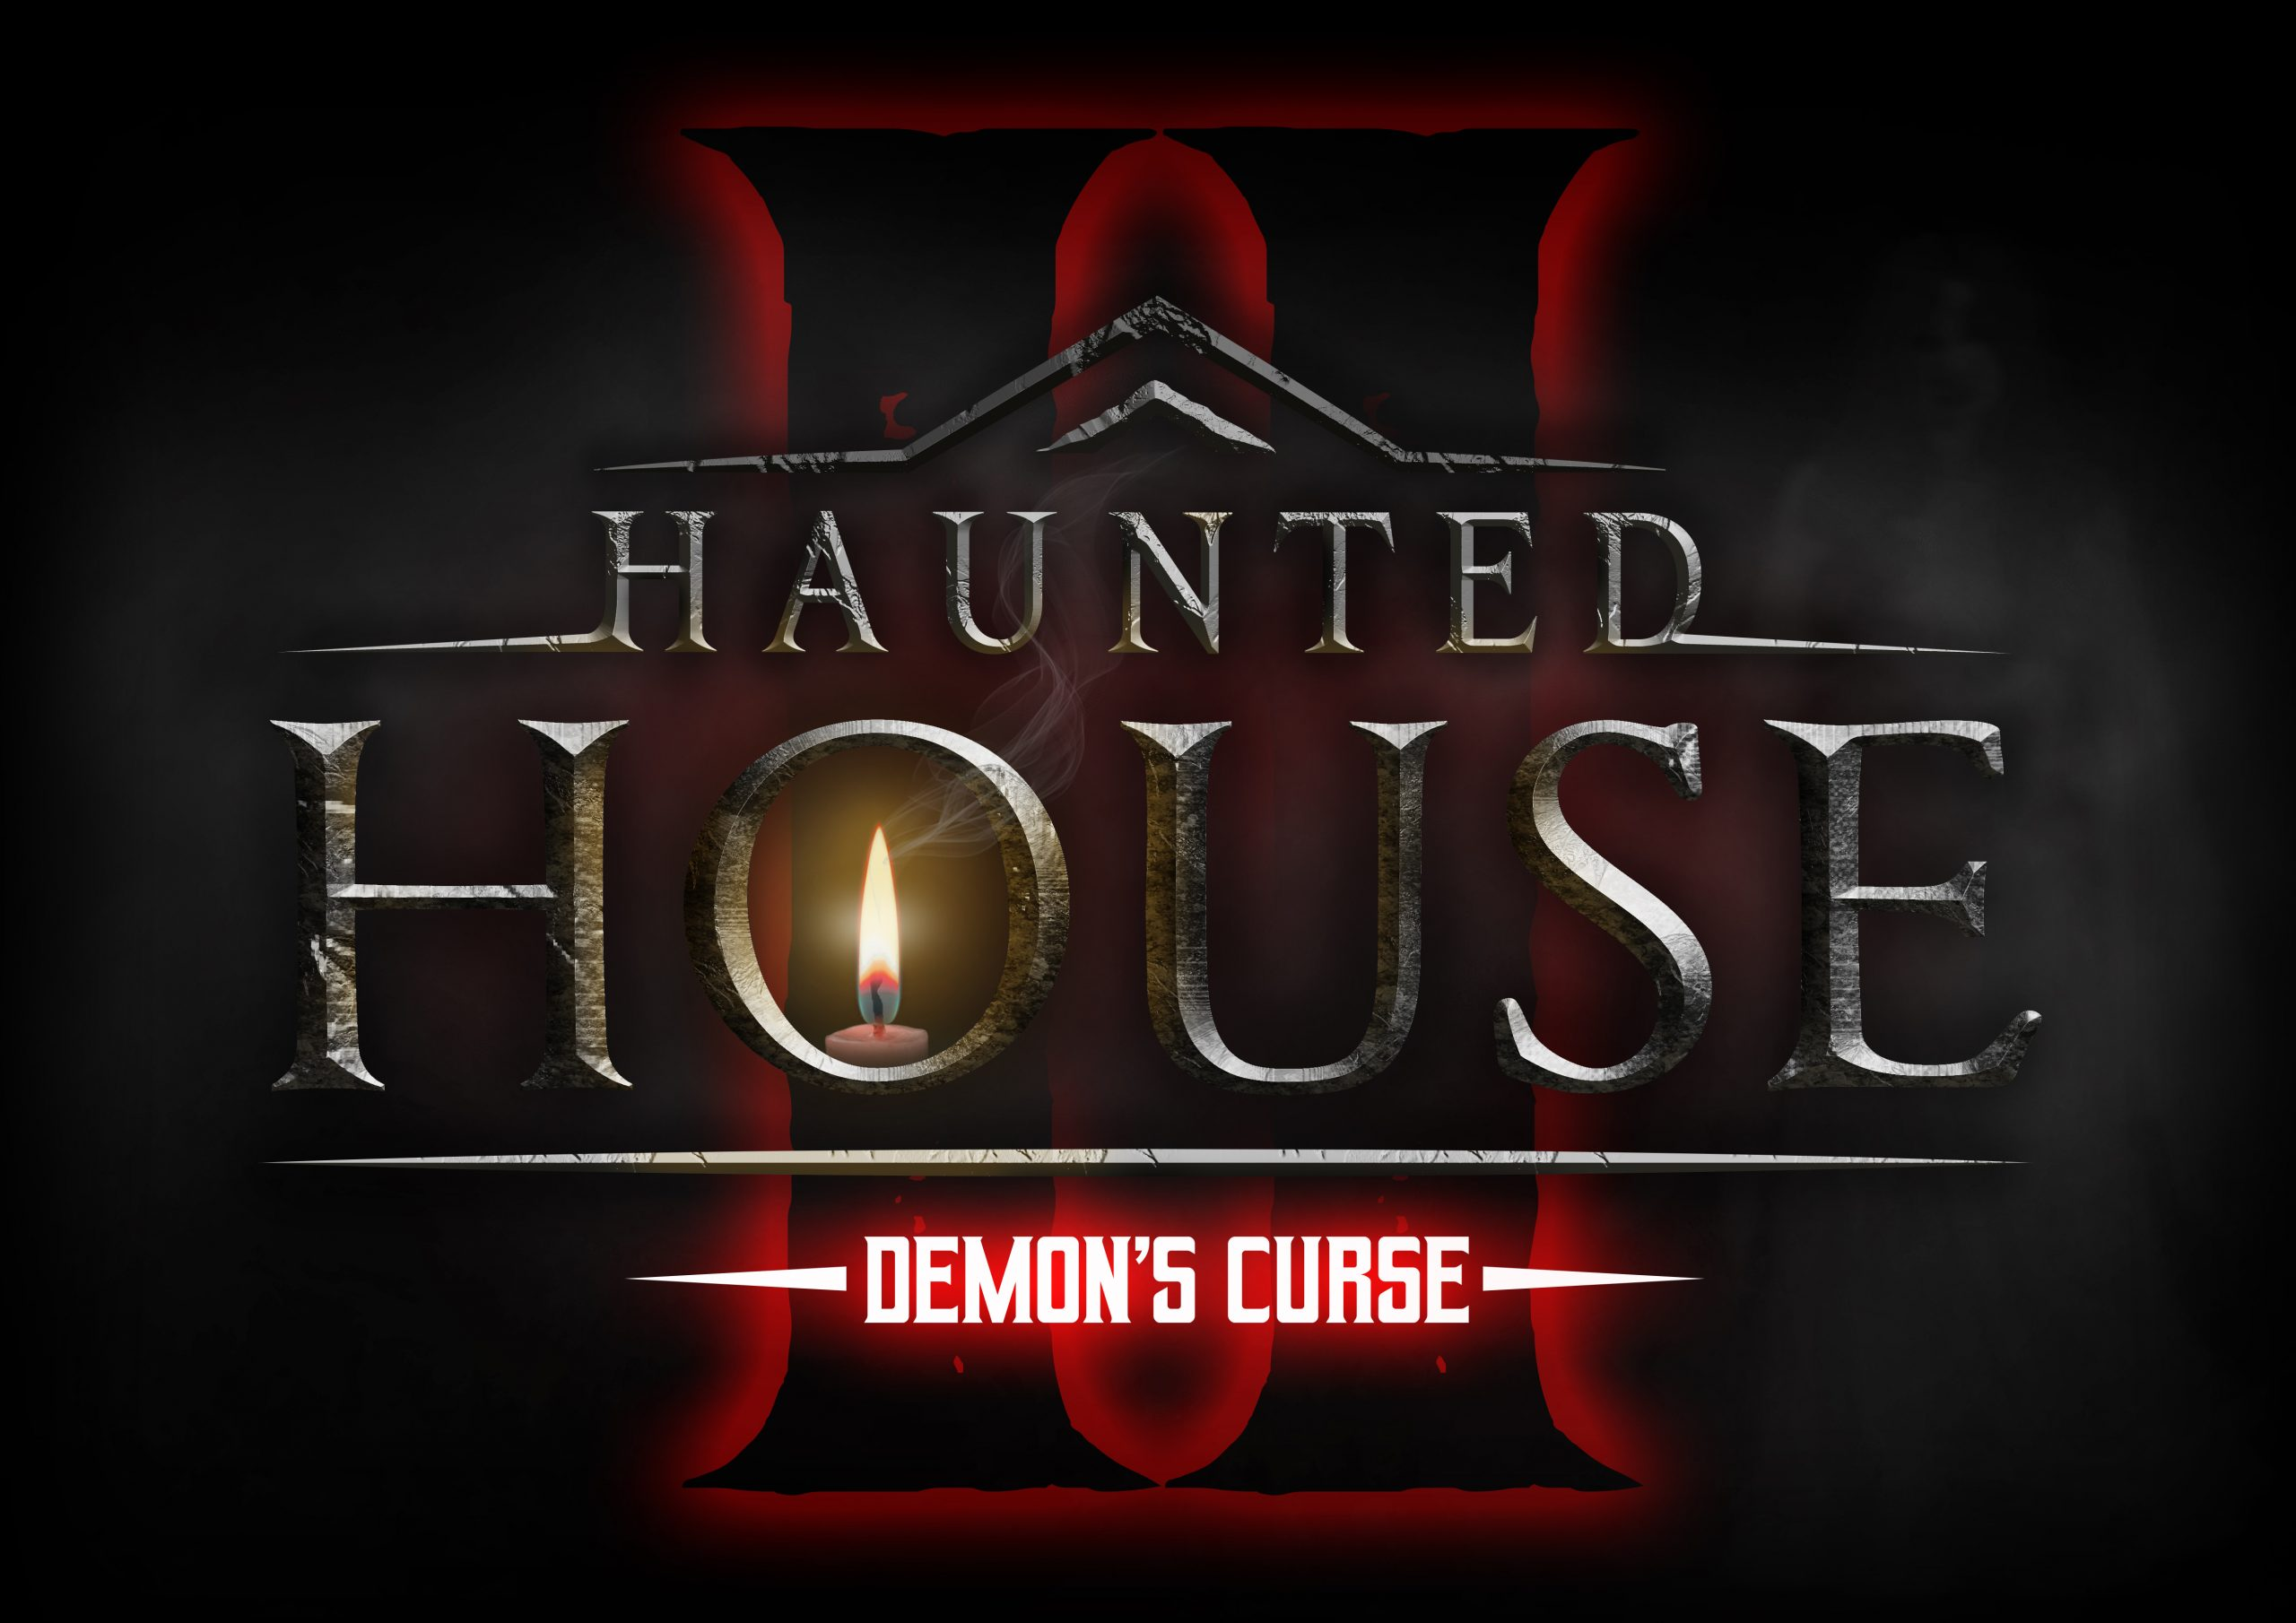 Haunted House II: Demon's Curse